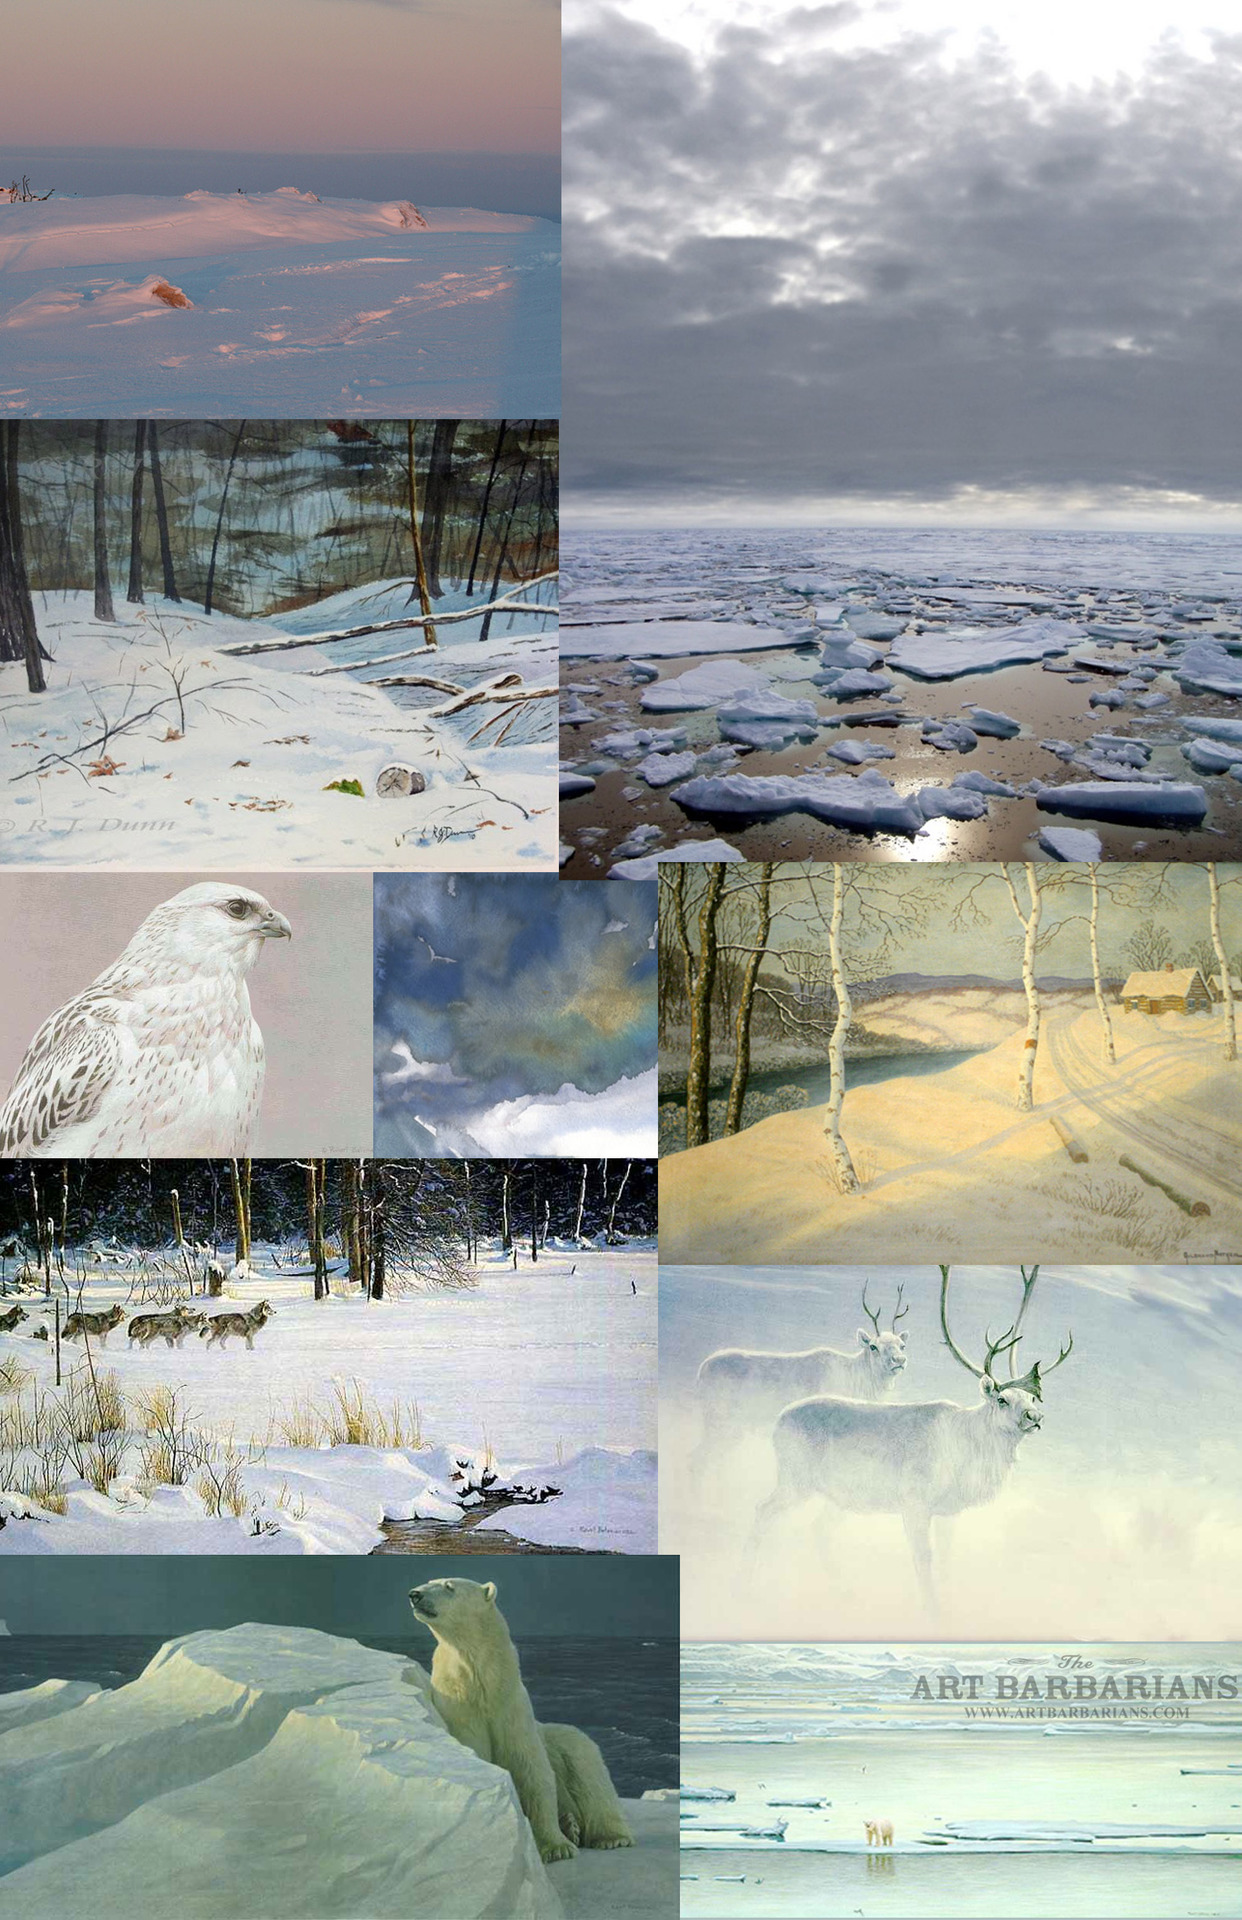 Moodboard for my next big illustration. It will be similar in concept to my last one (with the opossum and the deer etc.) but it will be an arctic or snow scene.